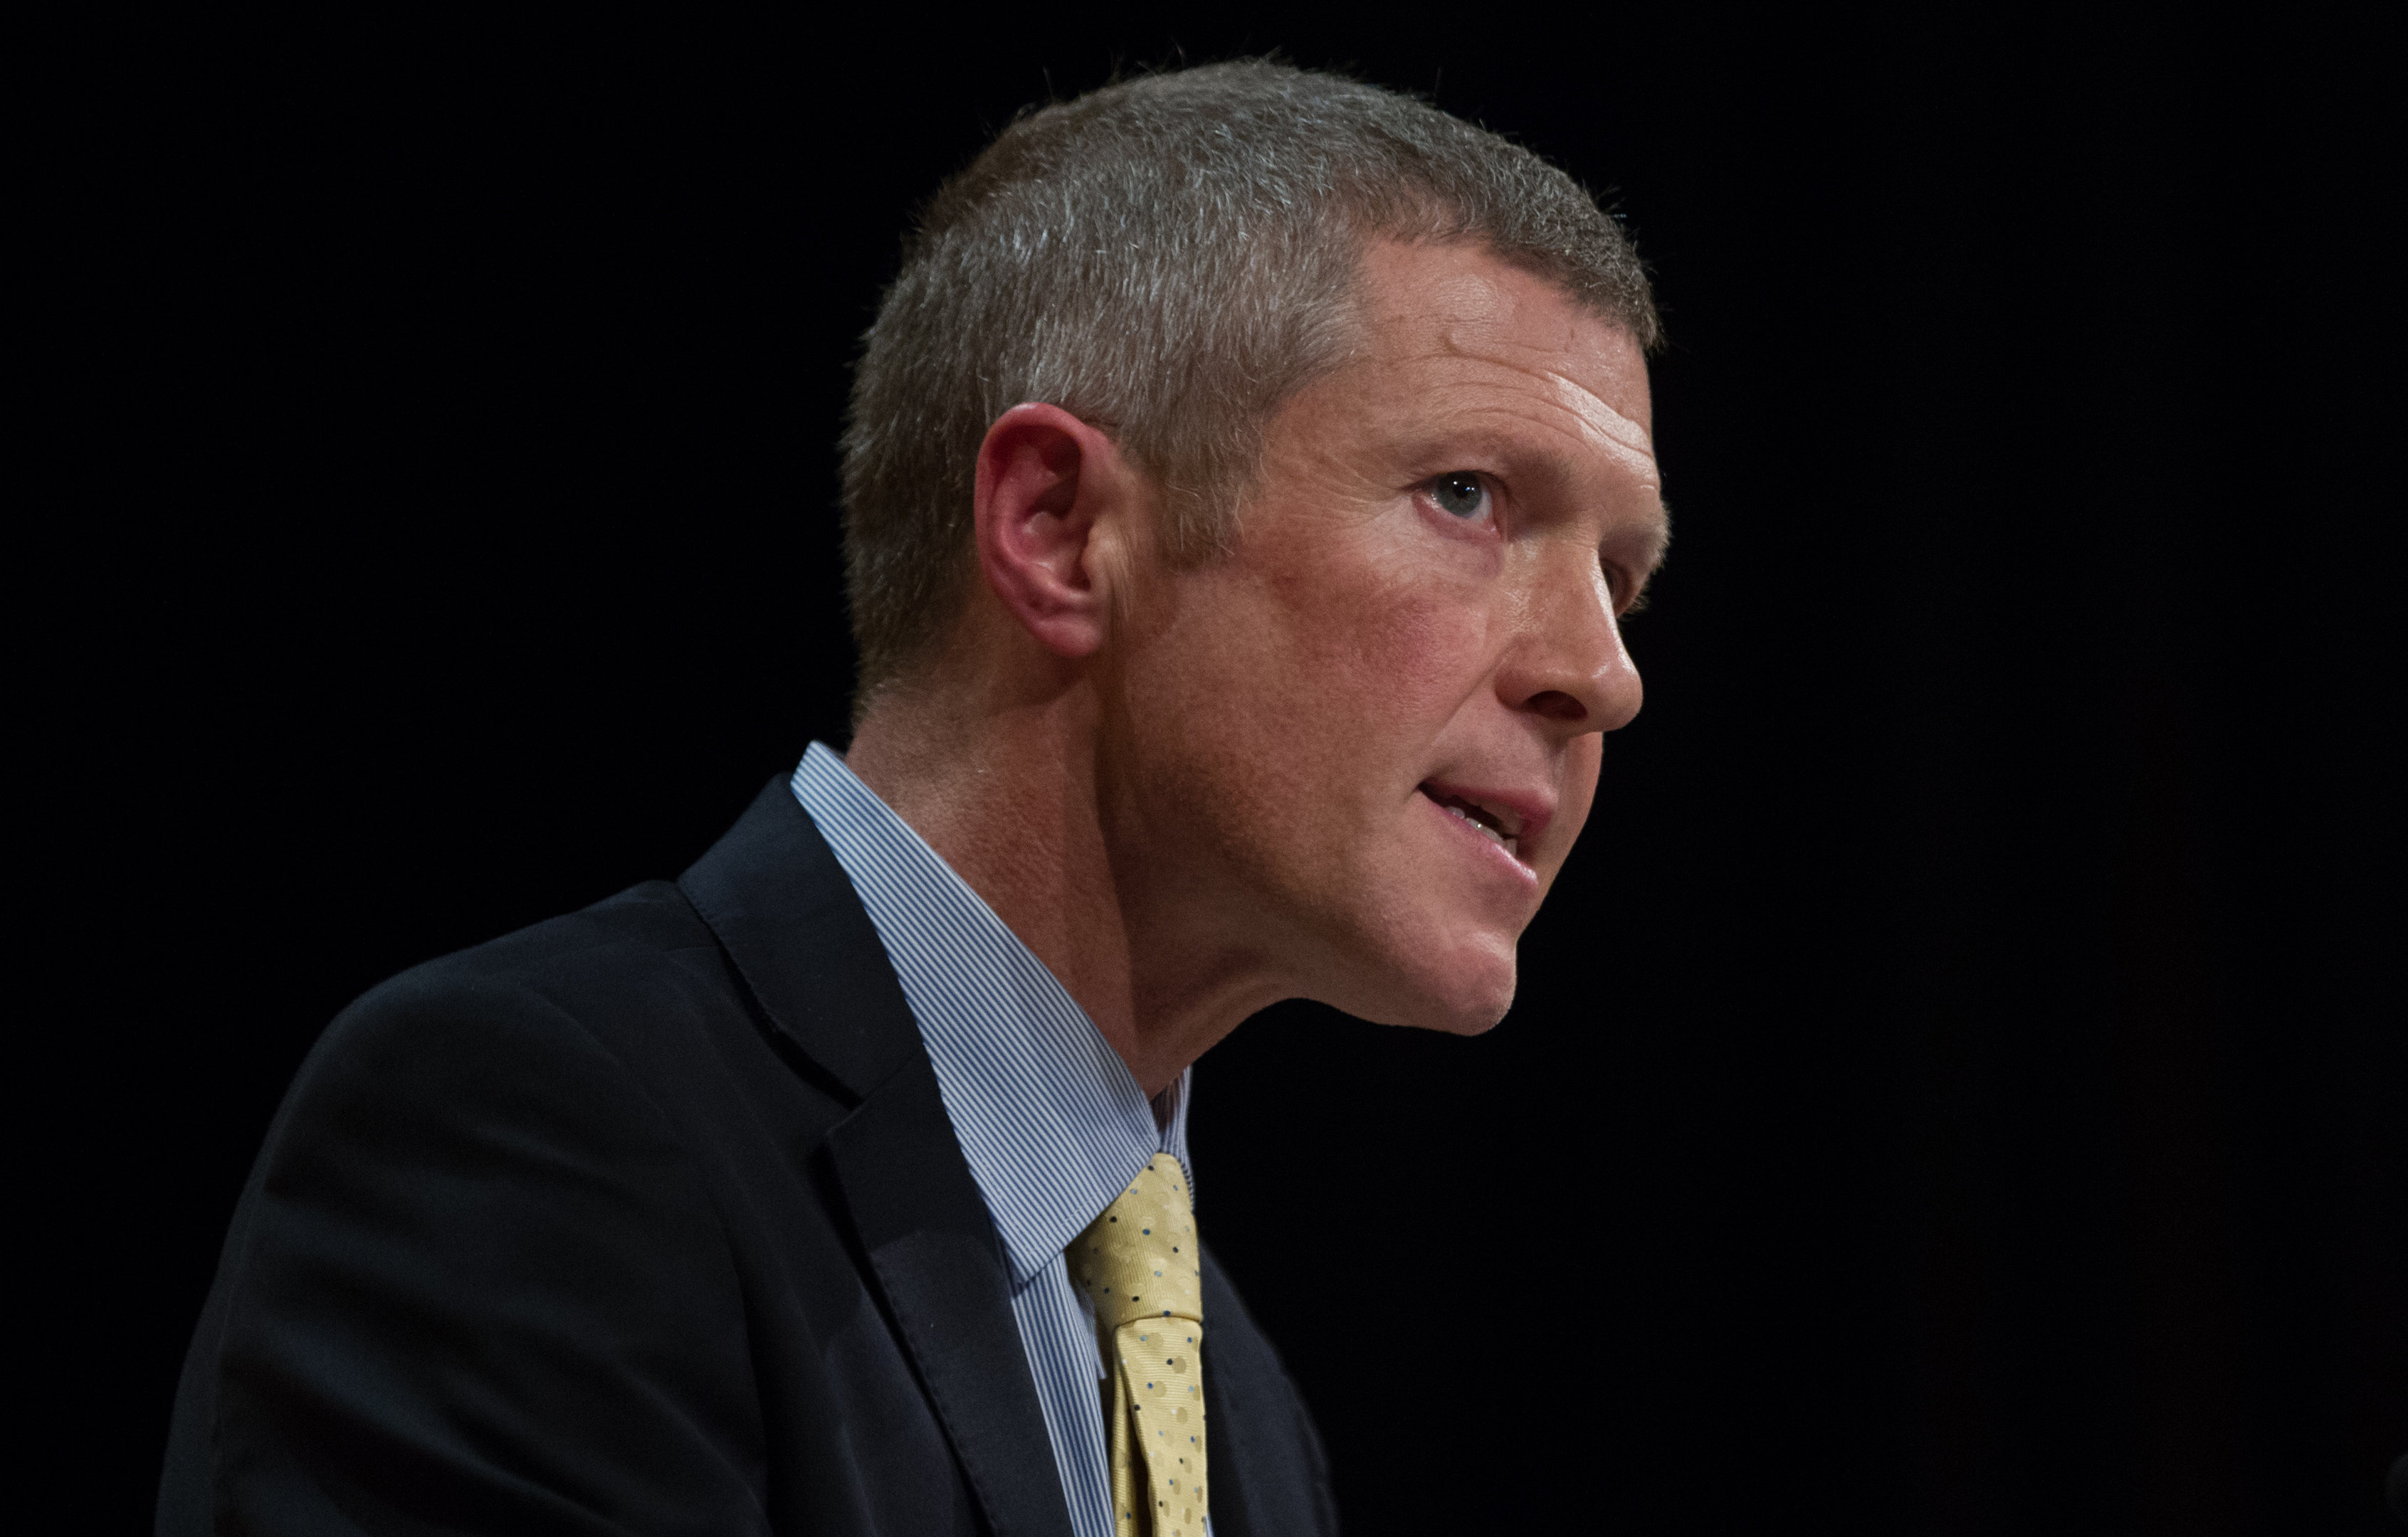 Willie Rennie (Getty Images)